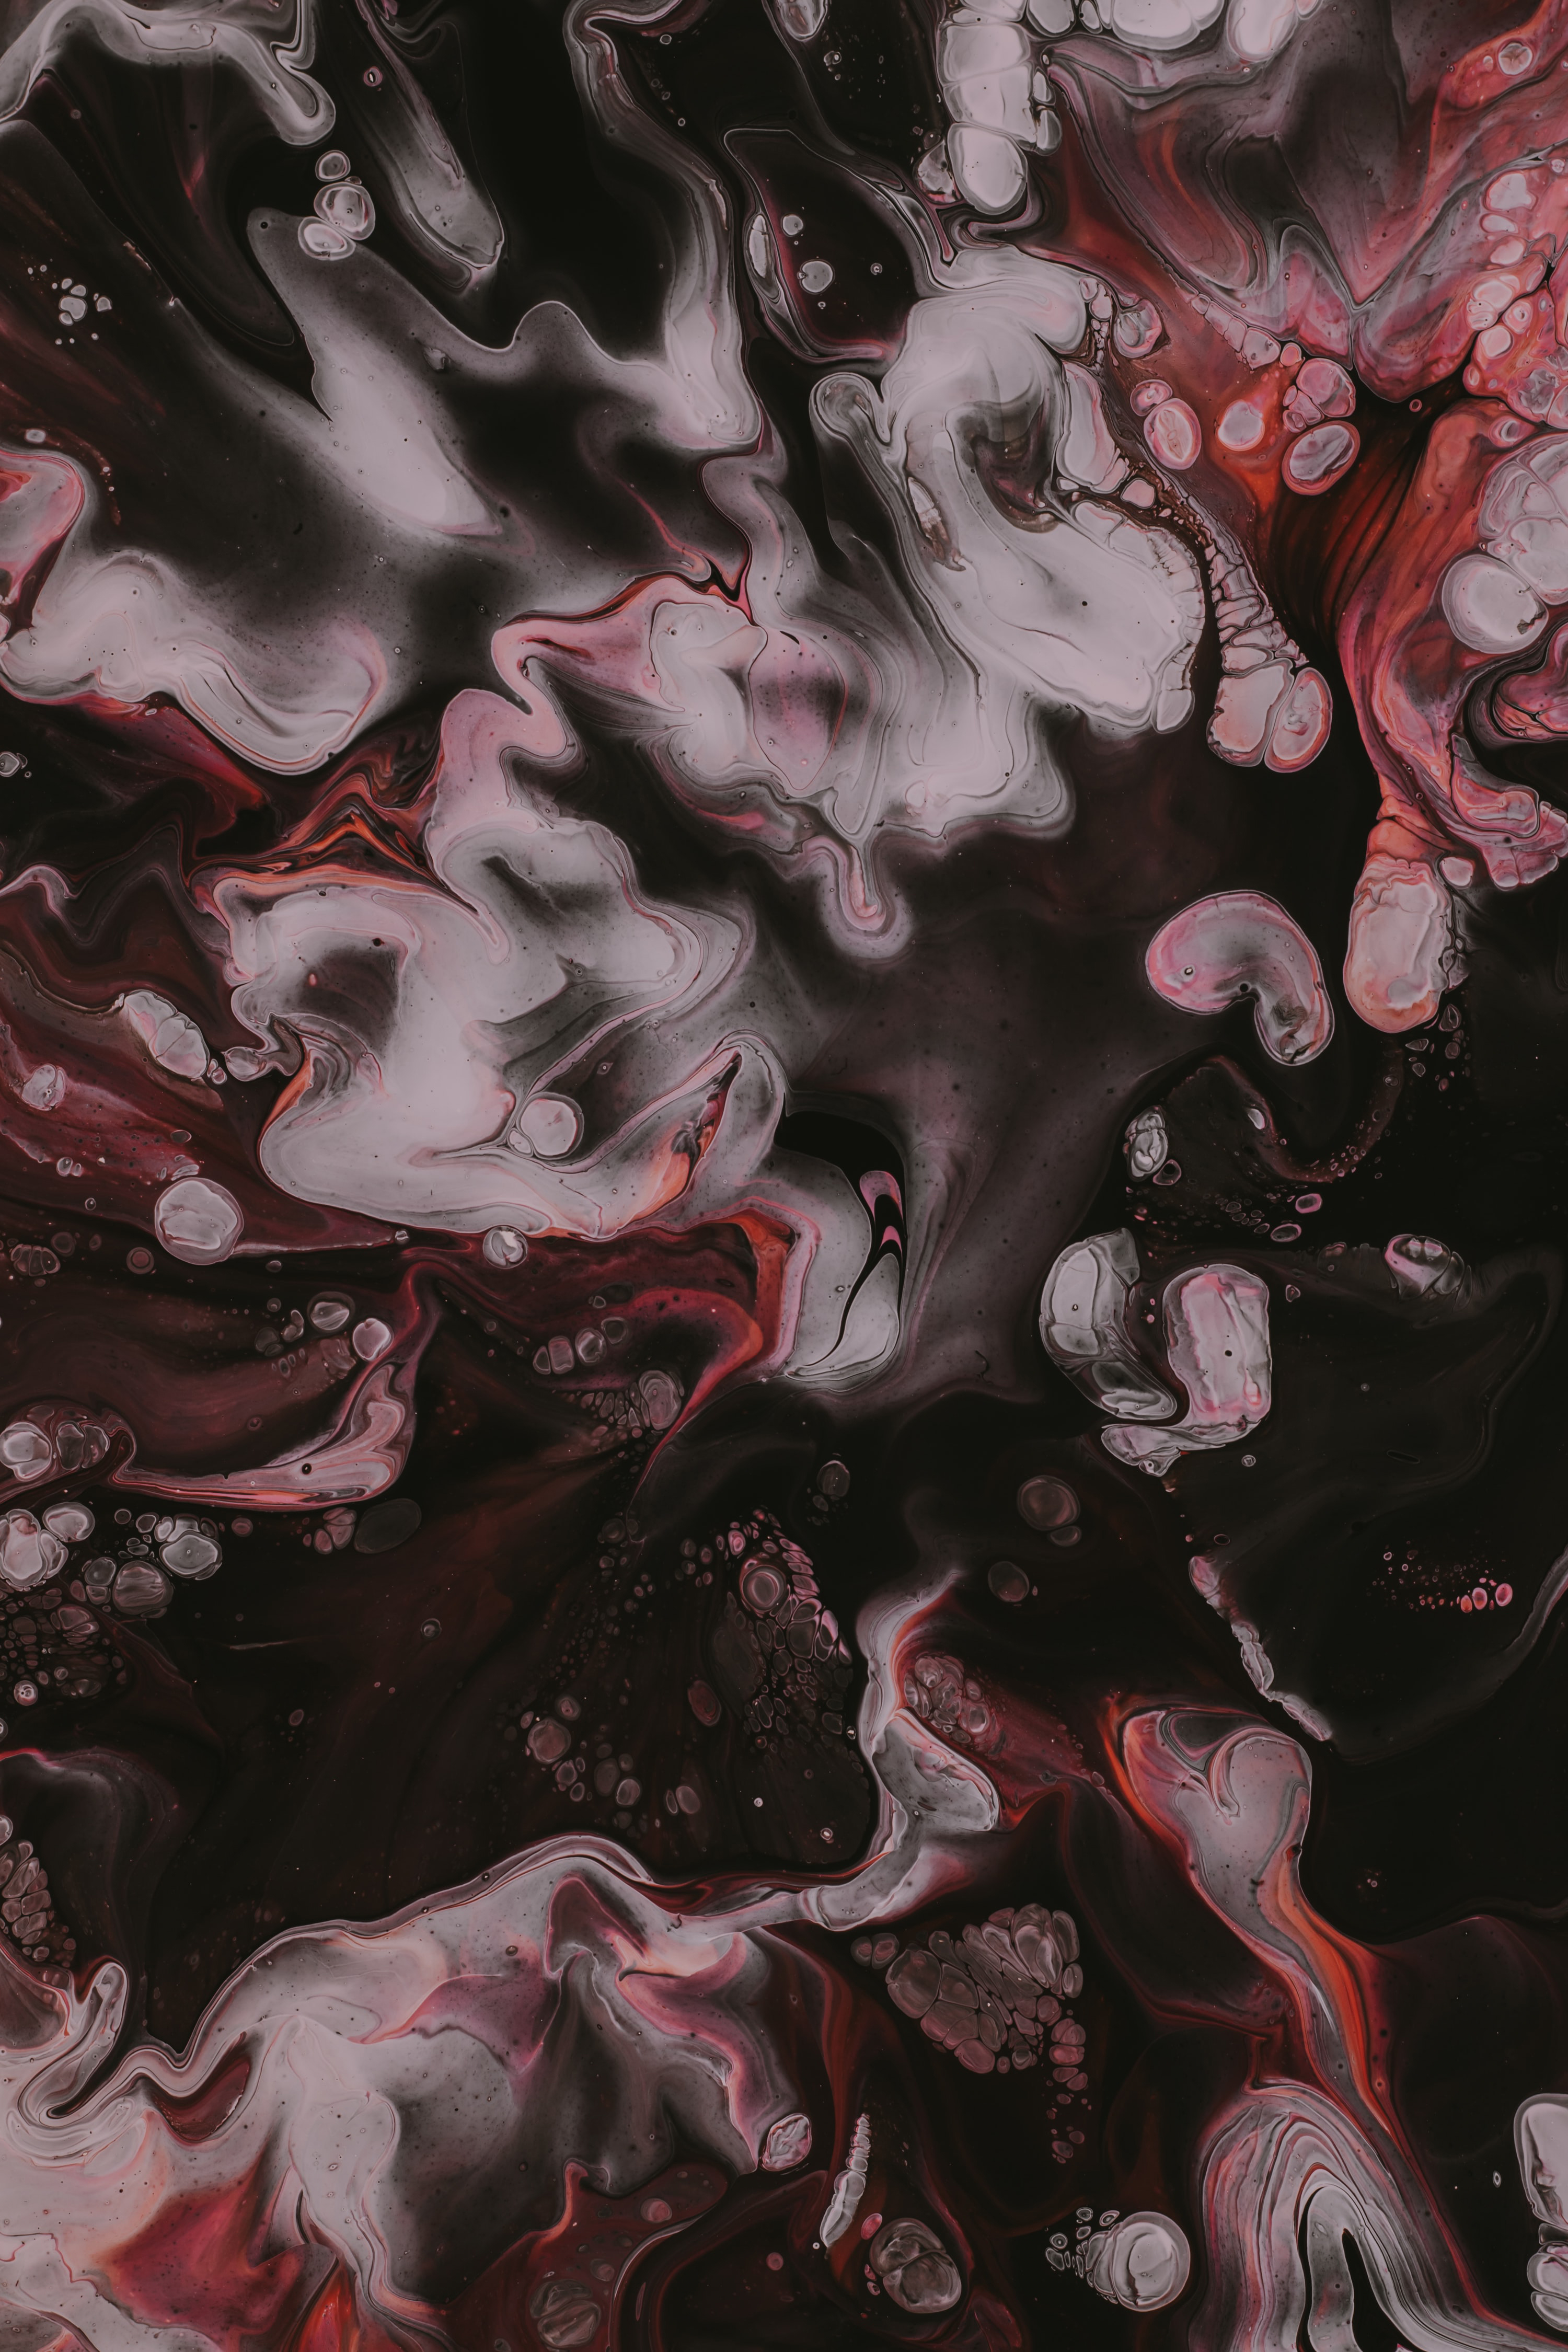 81738 download wallpaper Abstract, Paint, Liquid, Divorces, Macro screensavers and pictures for free